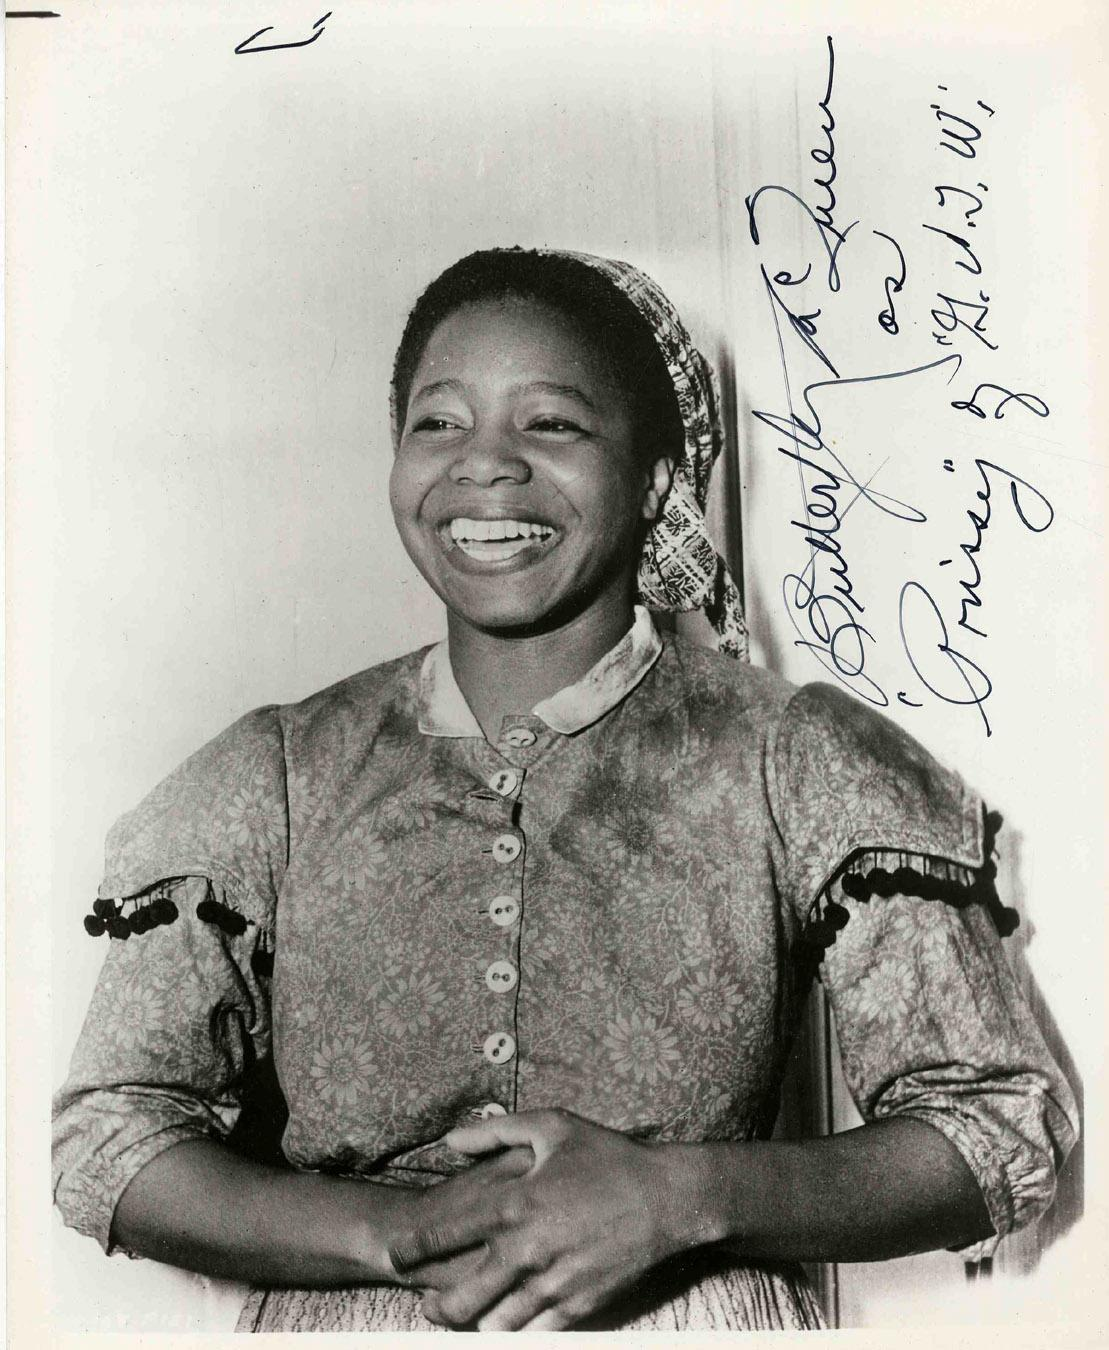 Forum on this topic: Rita Quigley, butterfly-mcqueen/